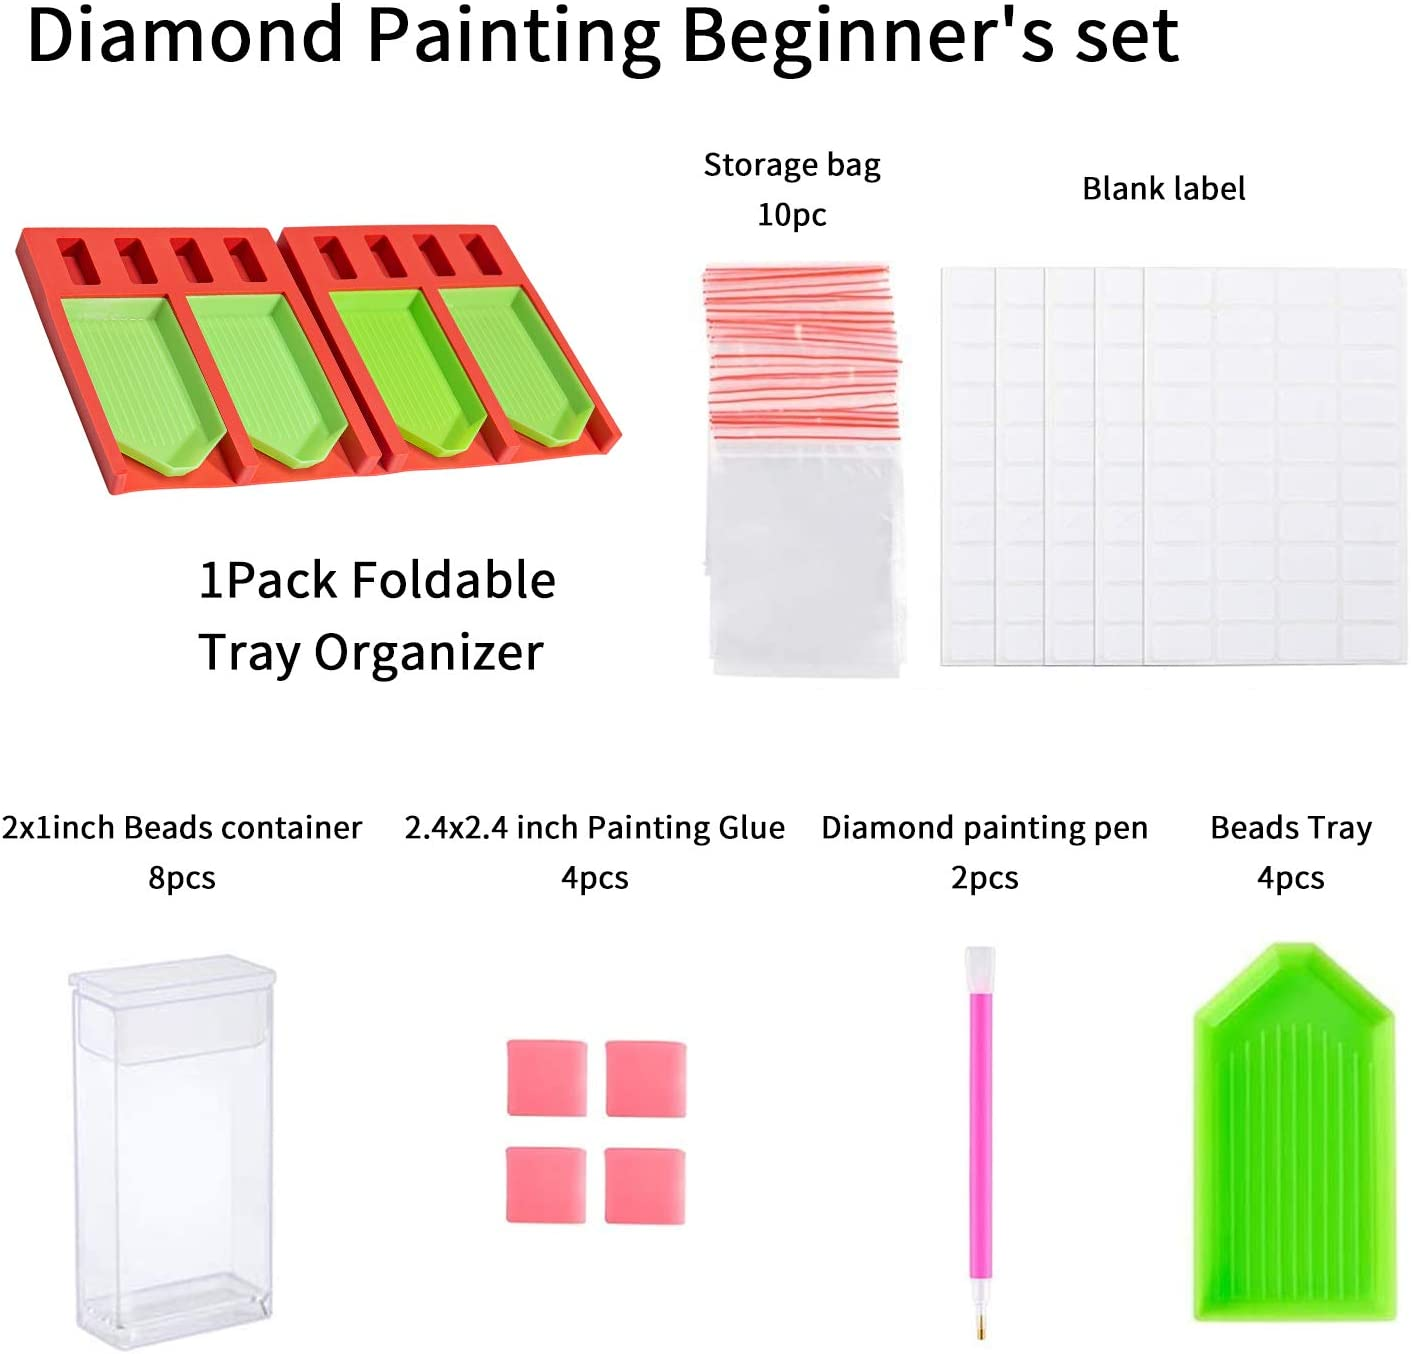 Diamond Painting Accessories and Tools Kits 2Pack Foldable Tray Organizer Diamond Art Accessories Kits for Adults Multi-Boat Holder for Tray Square Bead Storage Containers